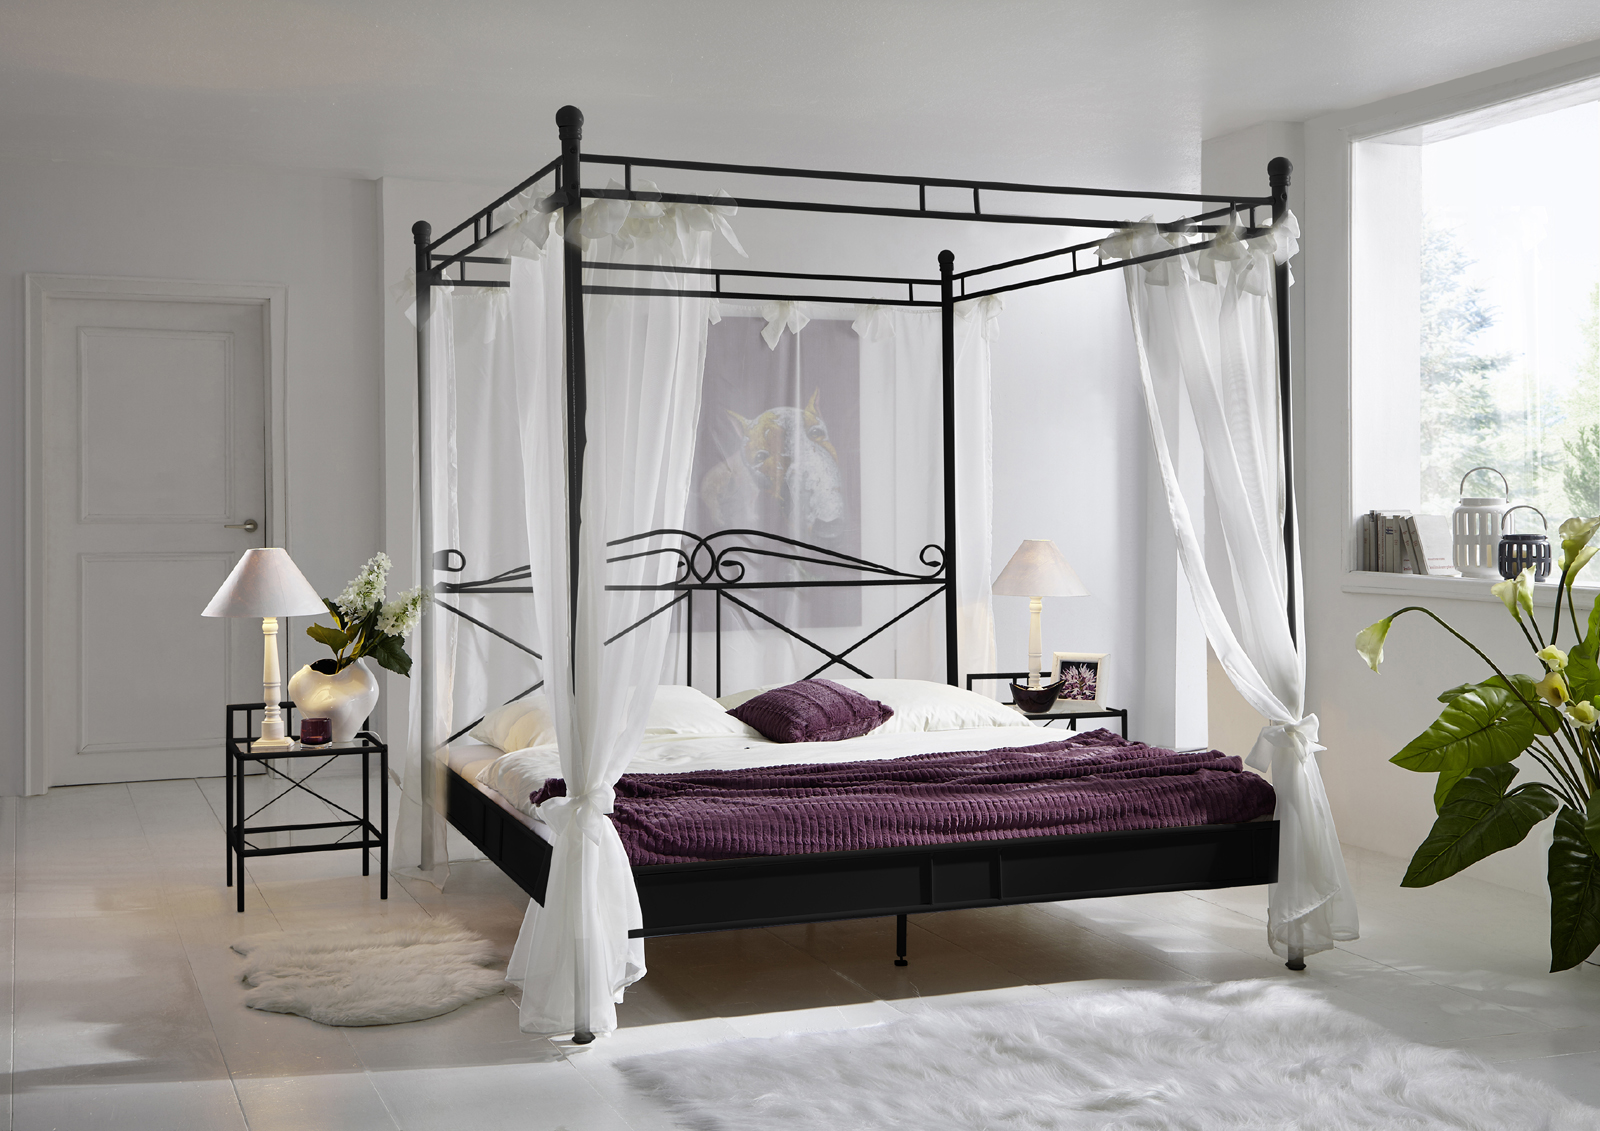 sam design himmelbett 180 cm schwarz venezia. Black Bedroom Furniture Sets. Home Design Ideas